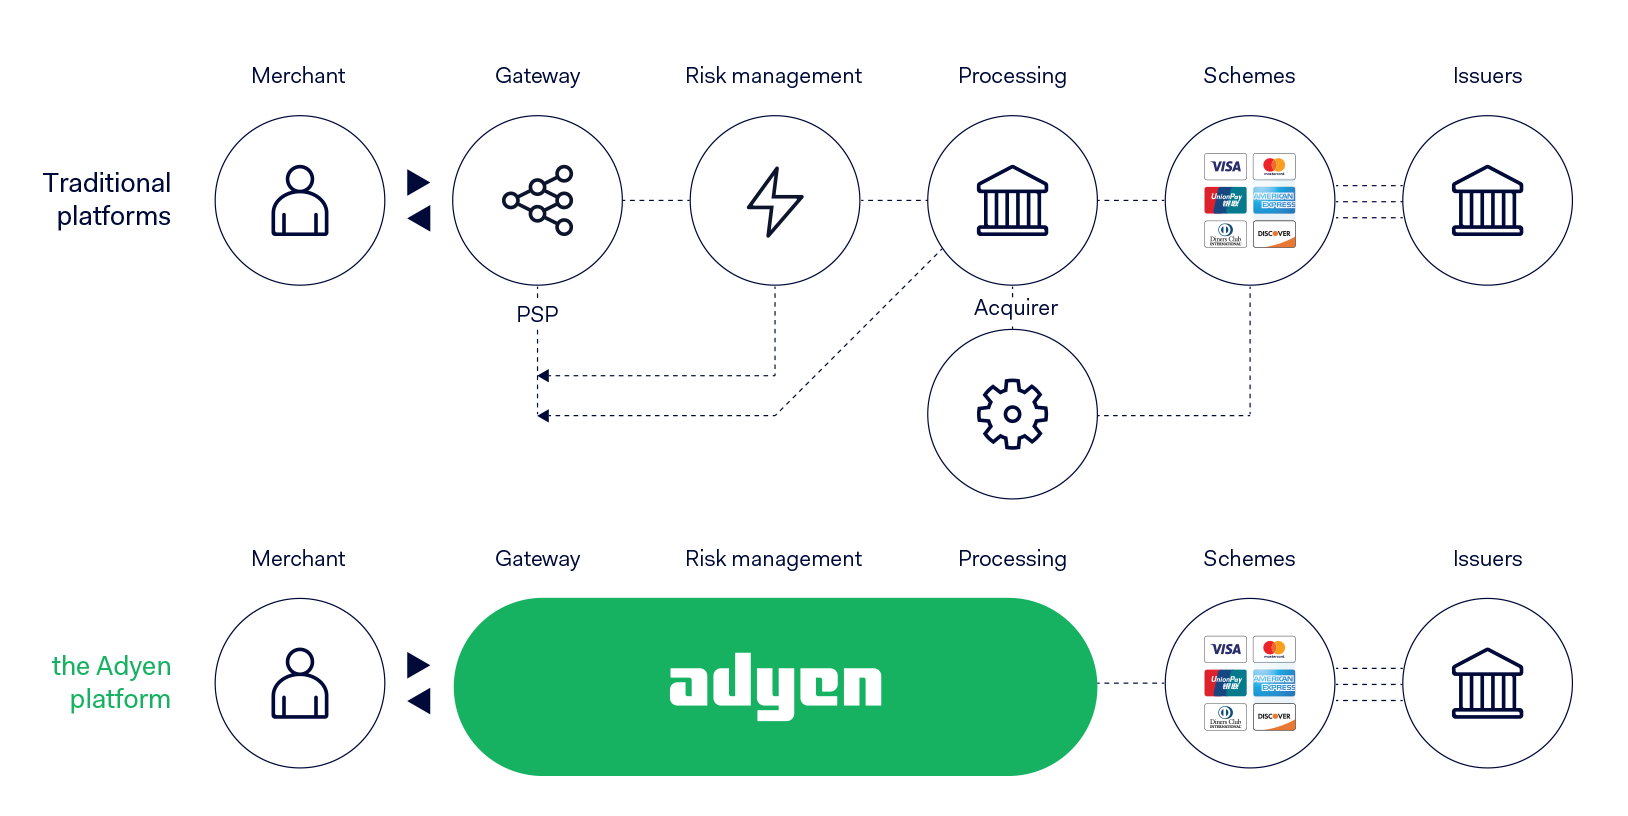 The adyen payment platform diagram